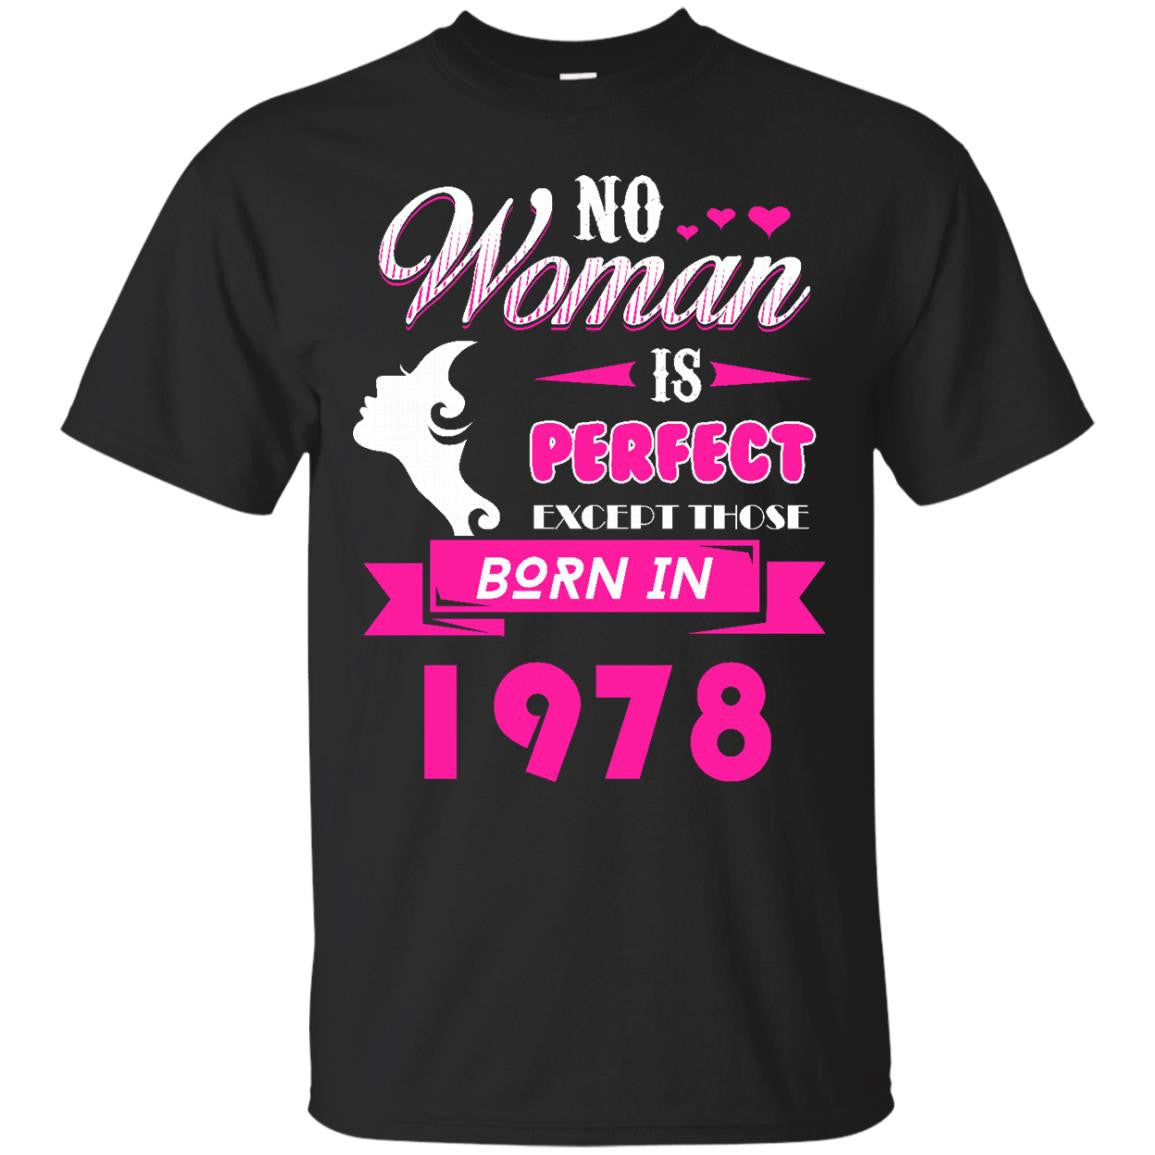 1978 Woman Shirts No Woman Perfect Except Those In 1978 T-shirts Hoodies Sweatshirts